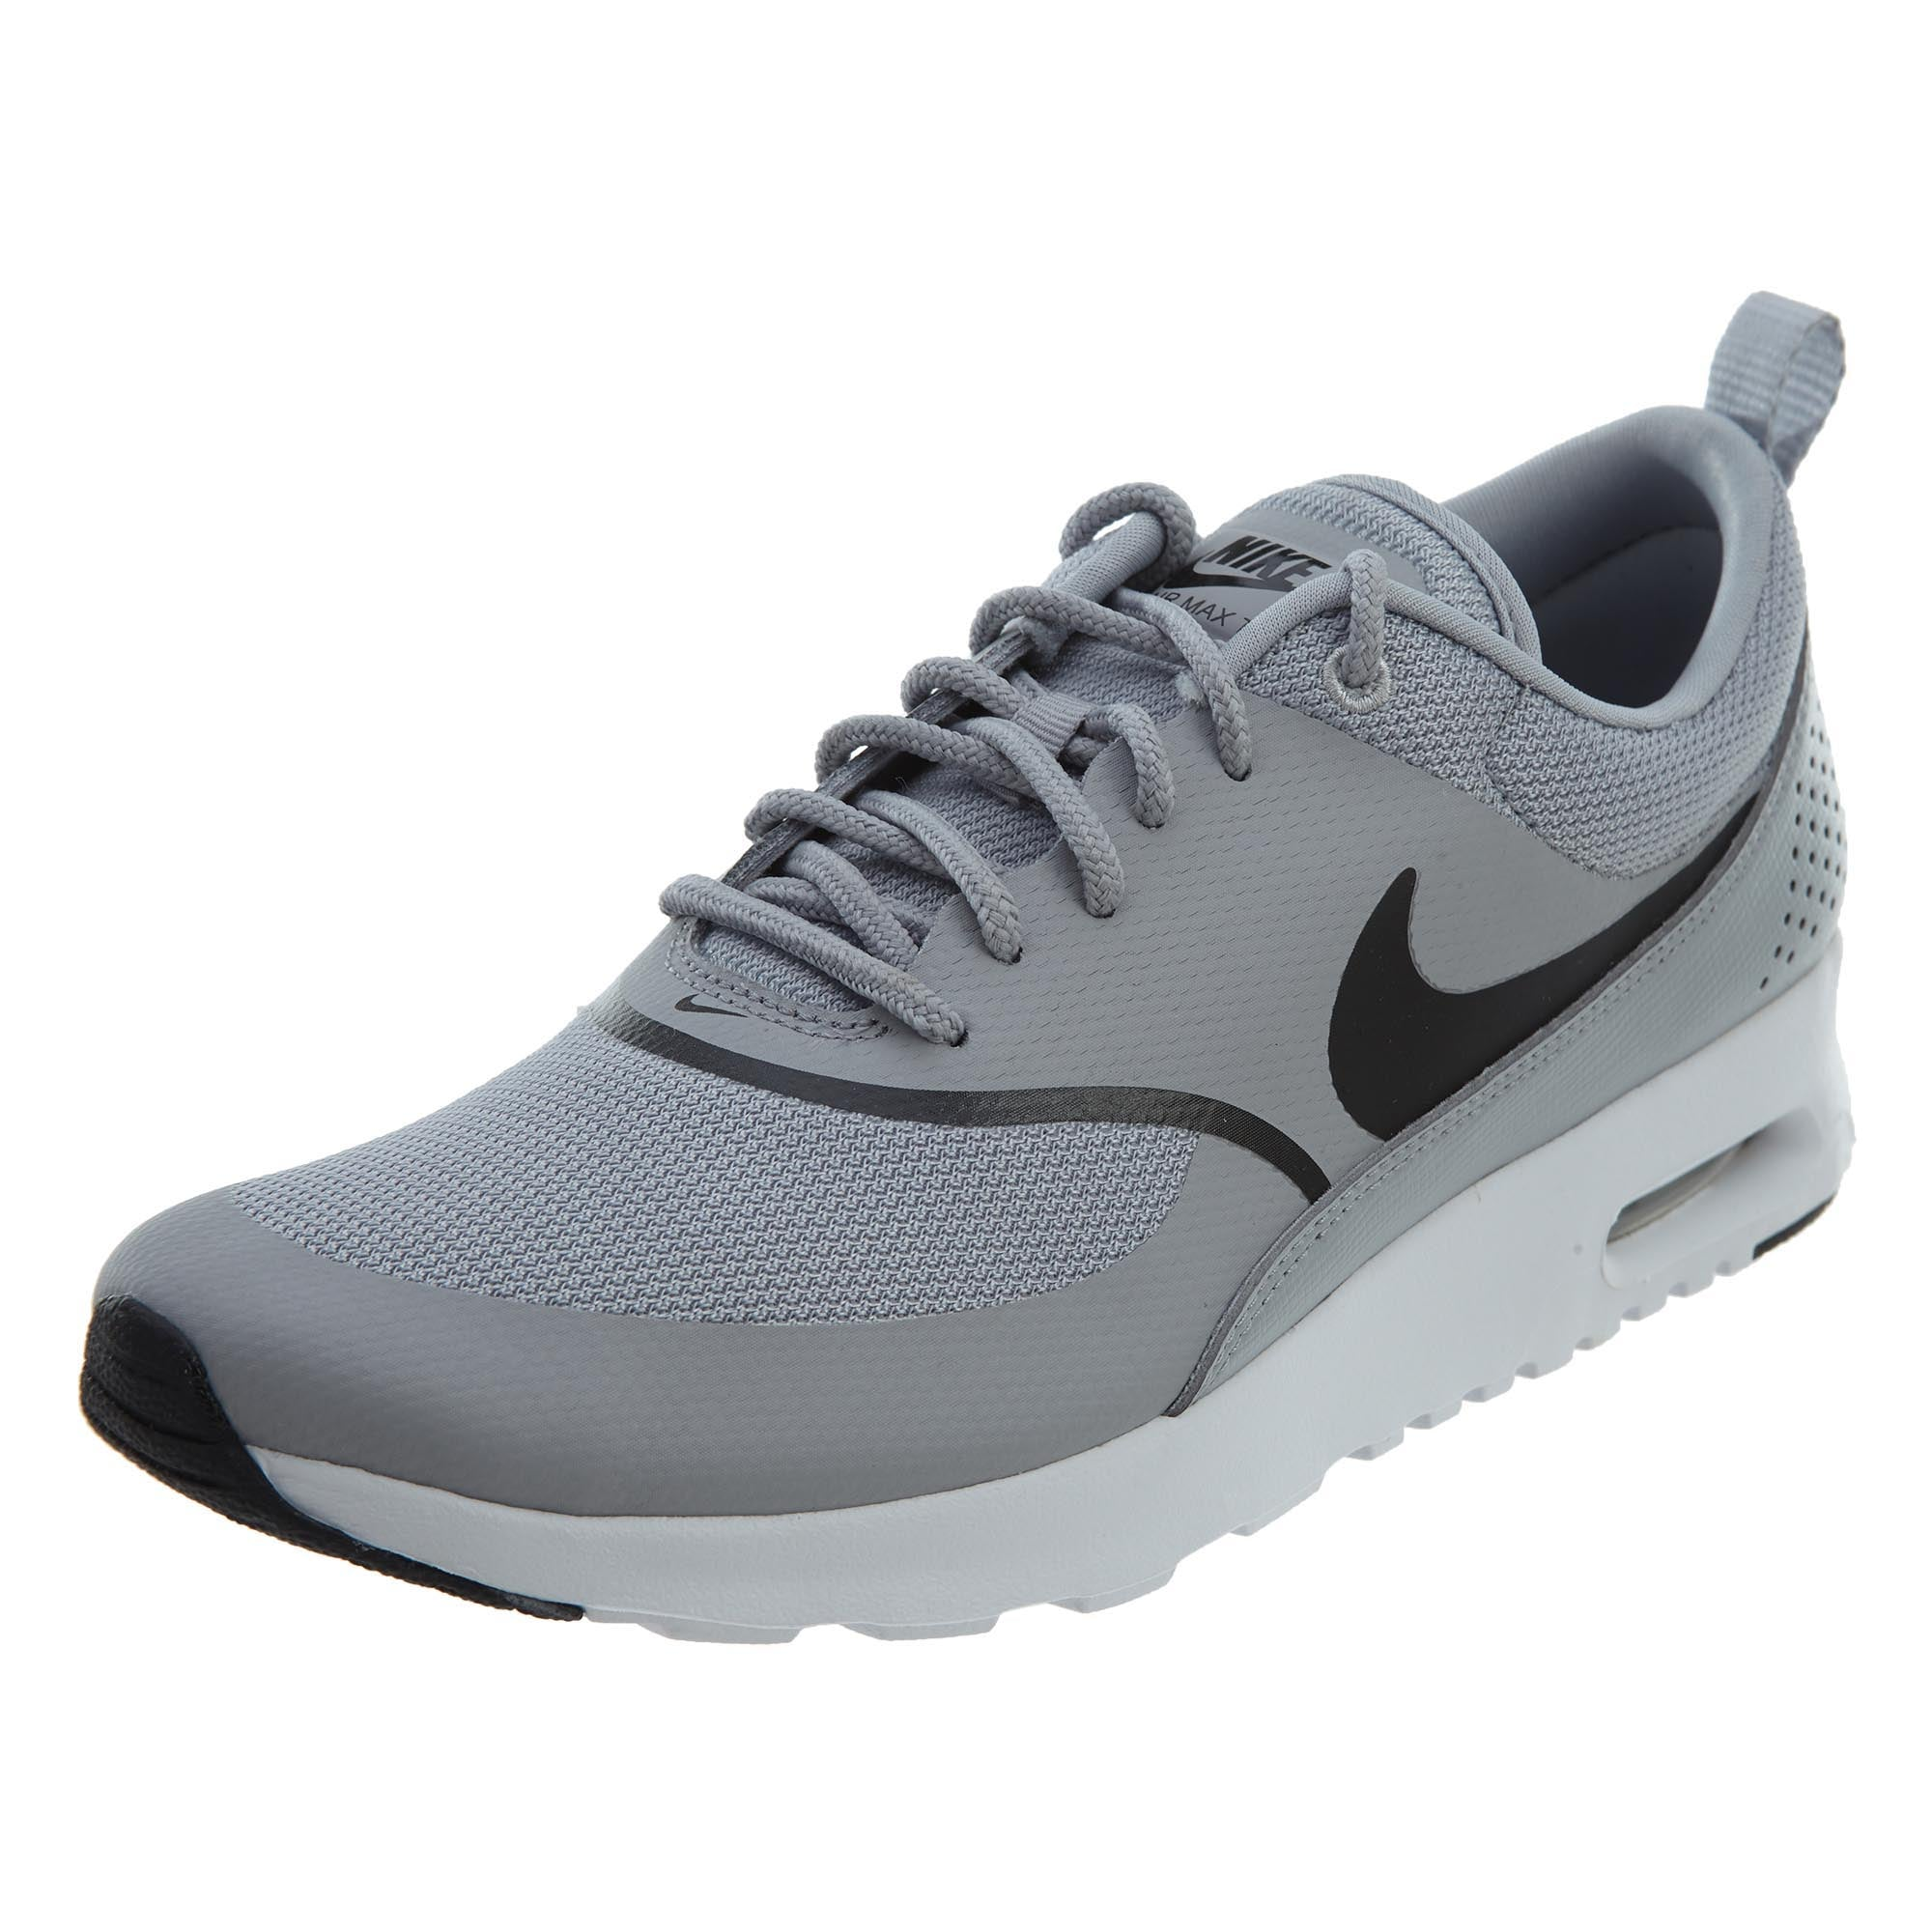 sports shoes 9368c 1b21e ... discount code for nike air max thea womens style 599409 f8582 5d7c1